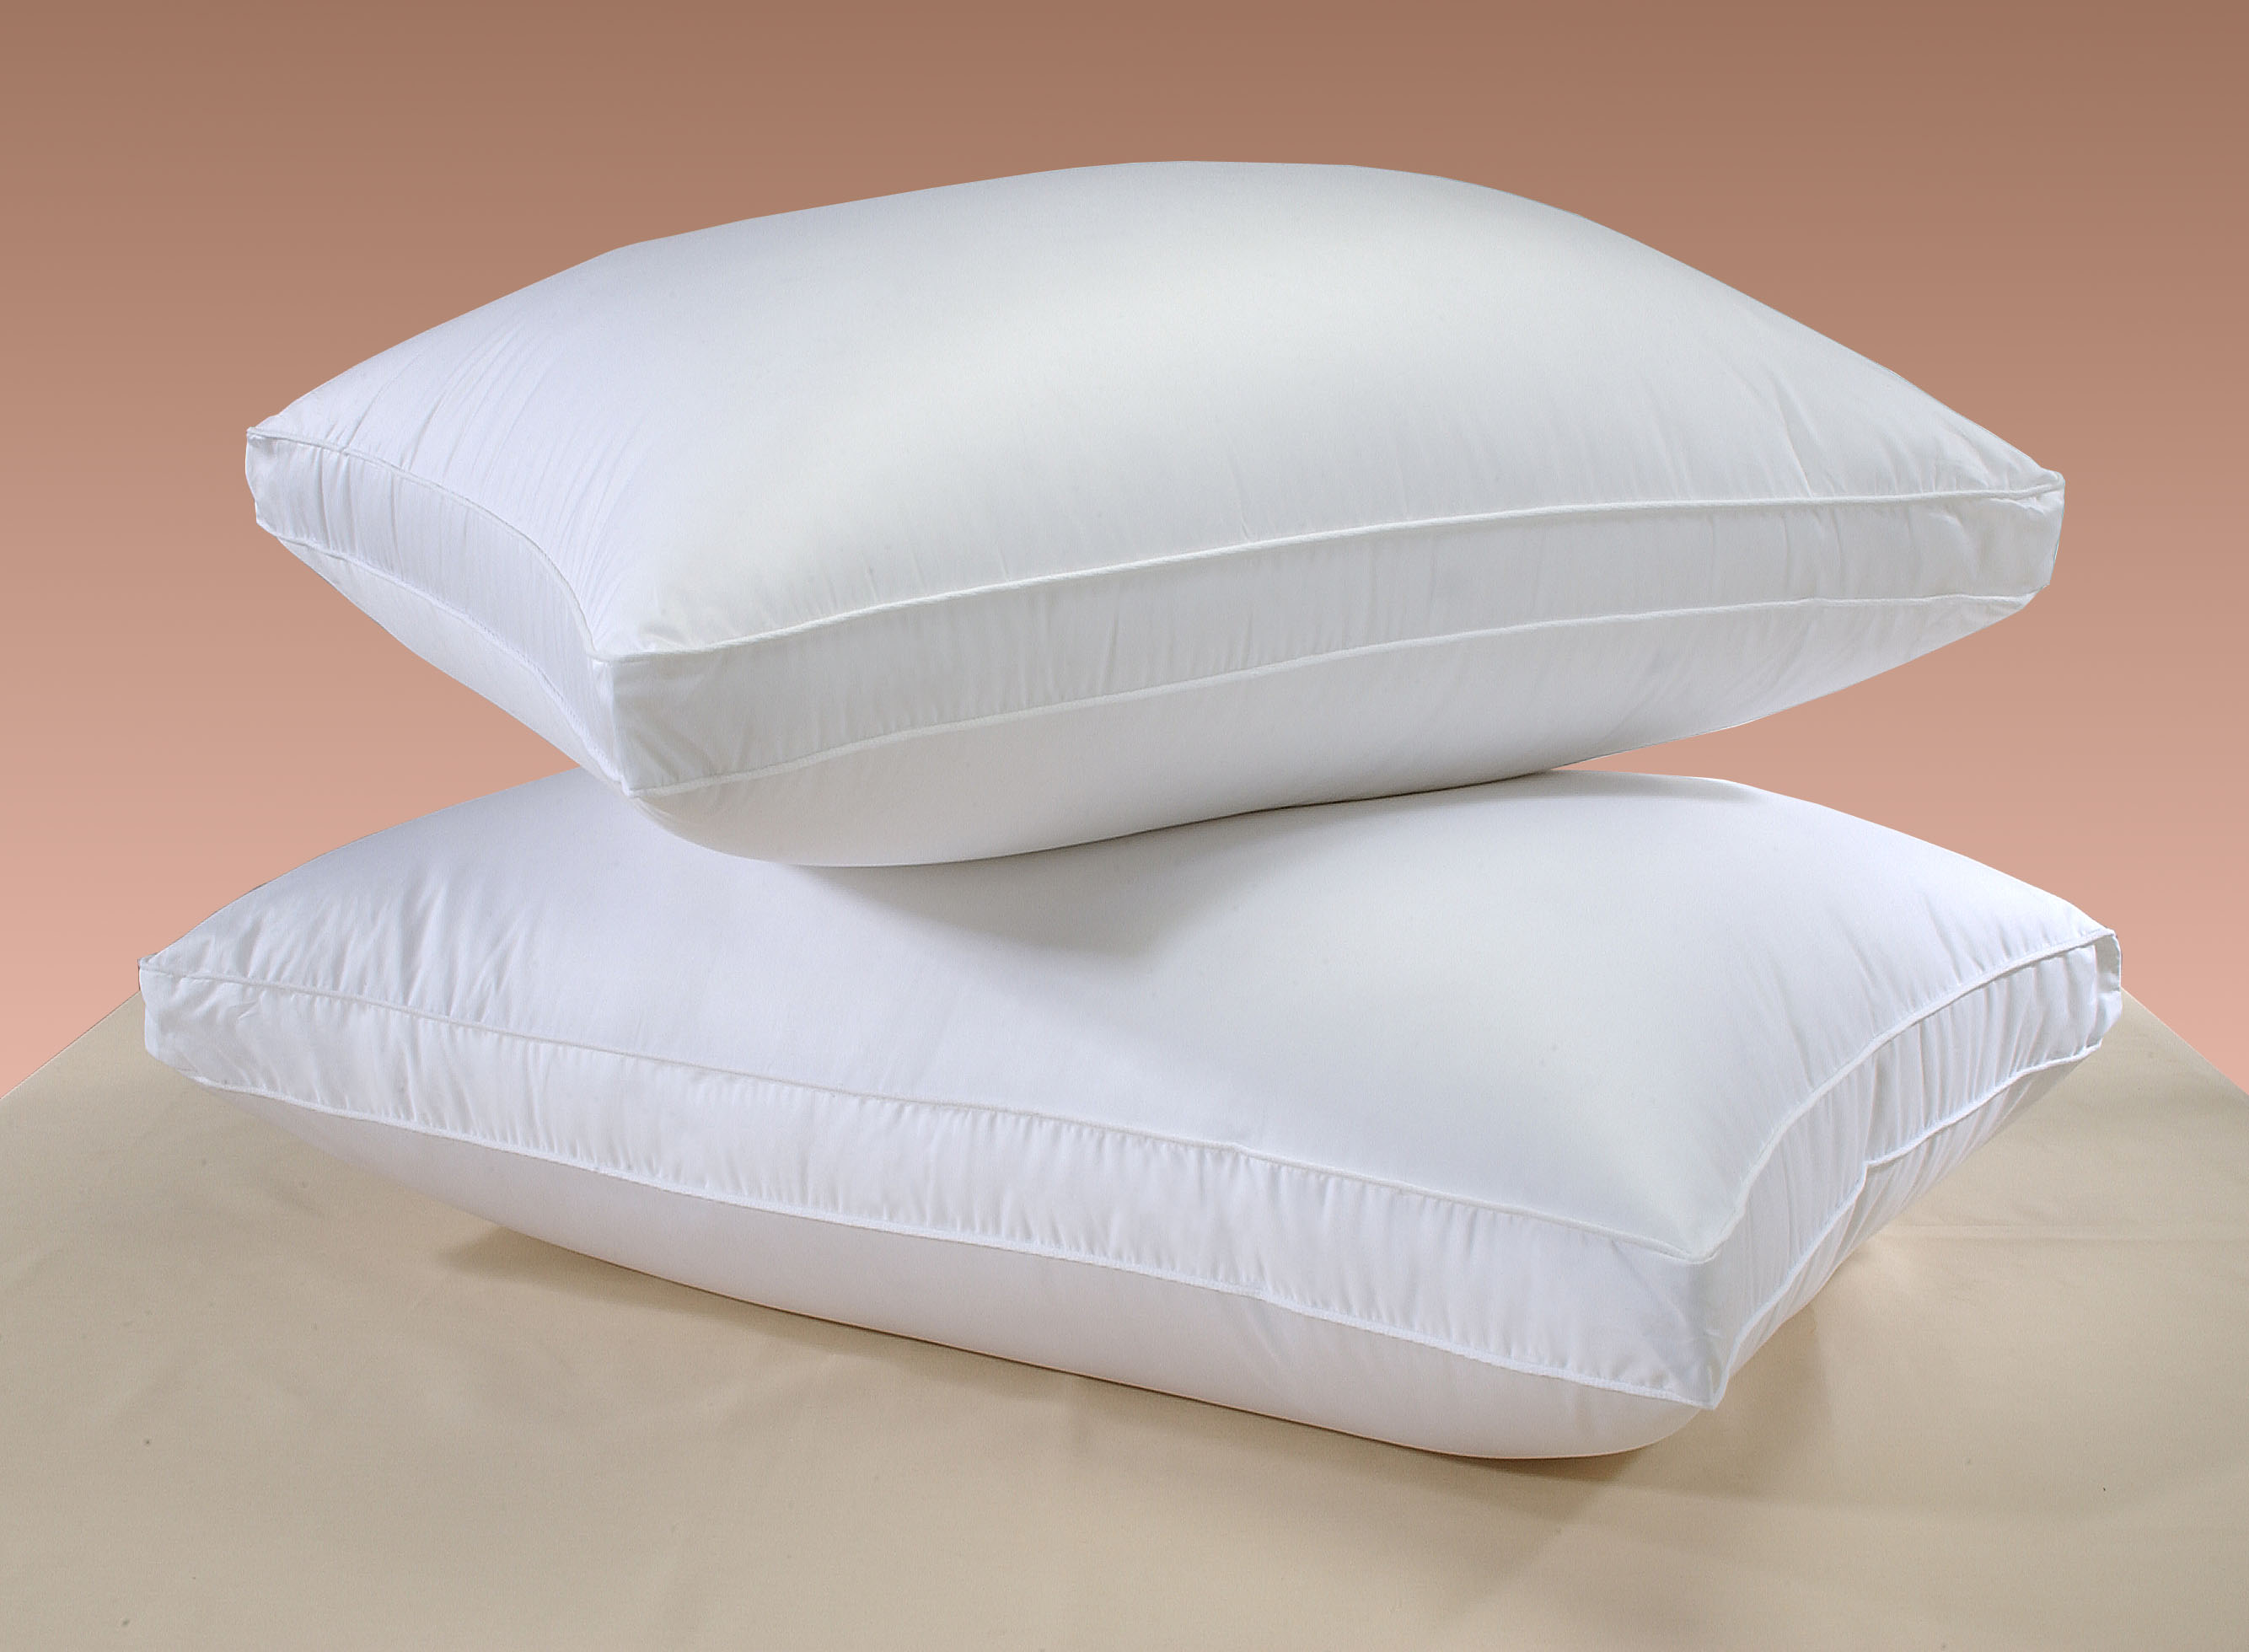 Our most comfortable goose down pillow among other